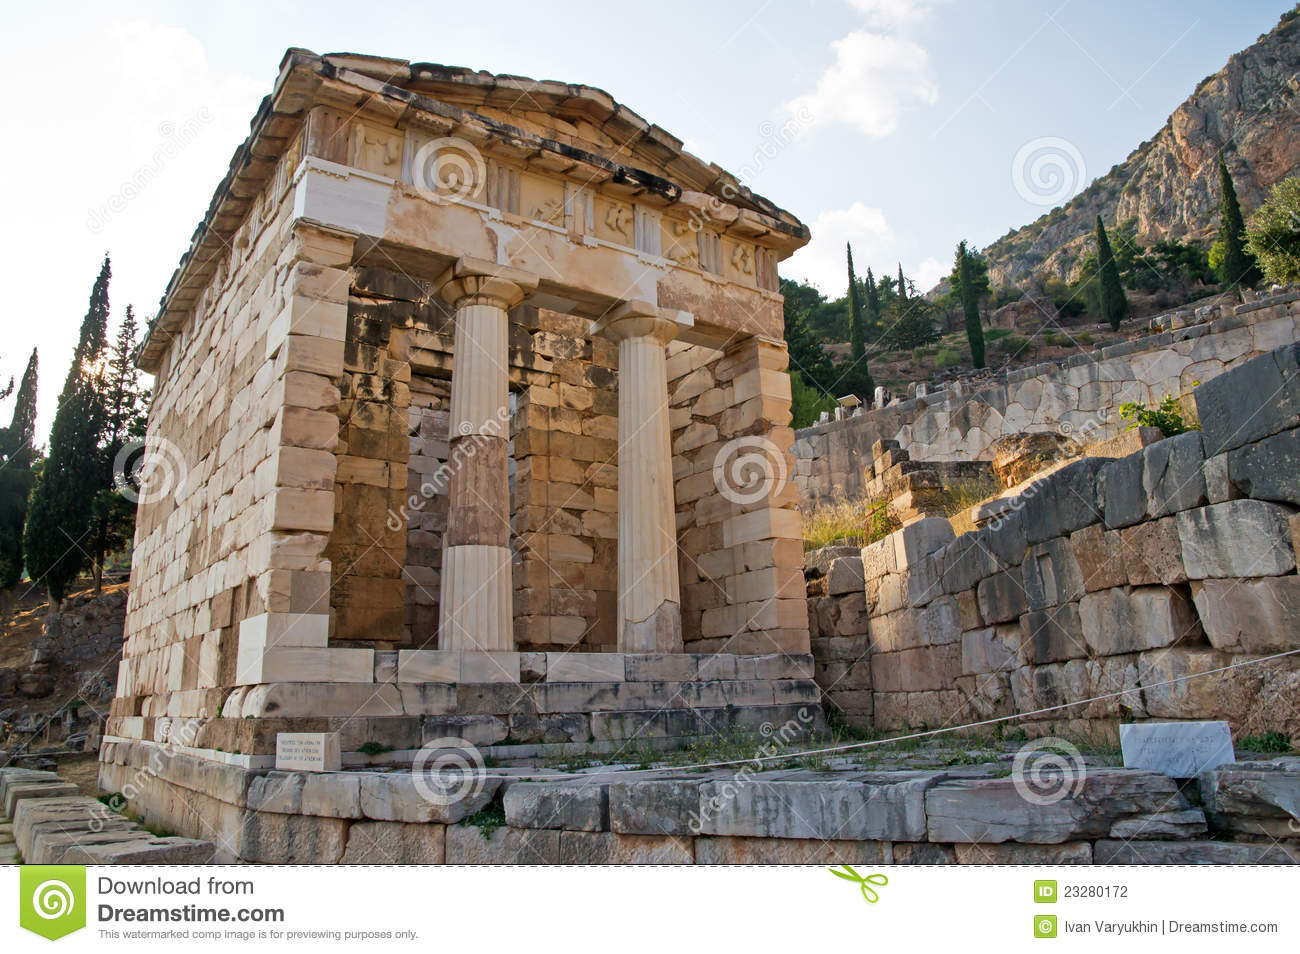 Who were the Athenians?